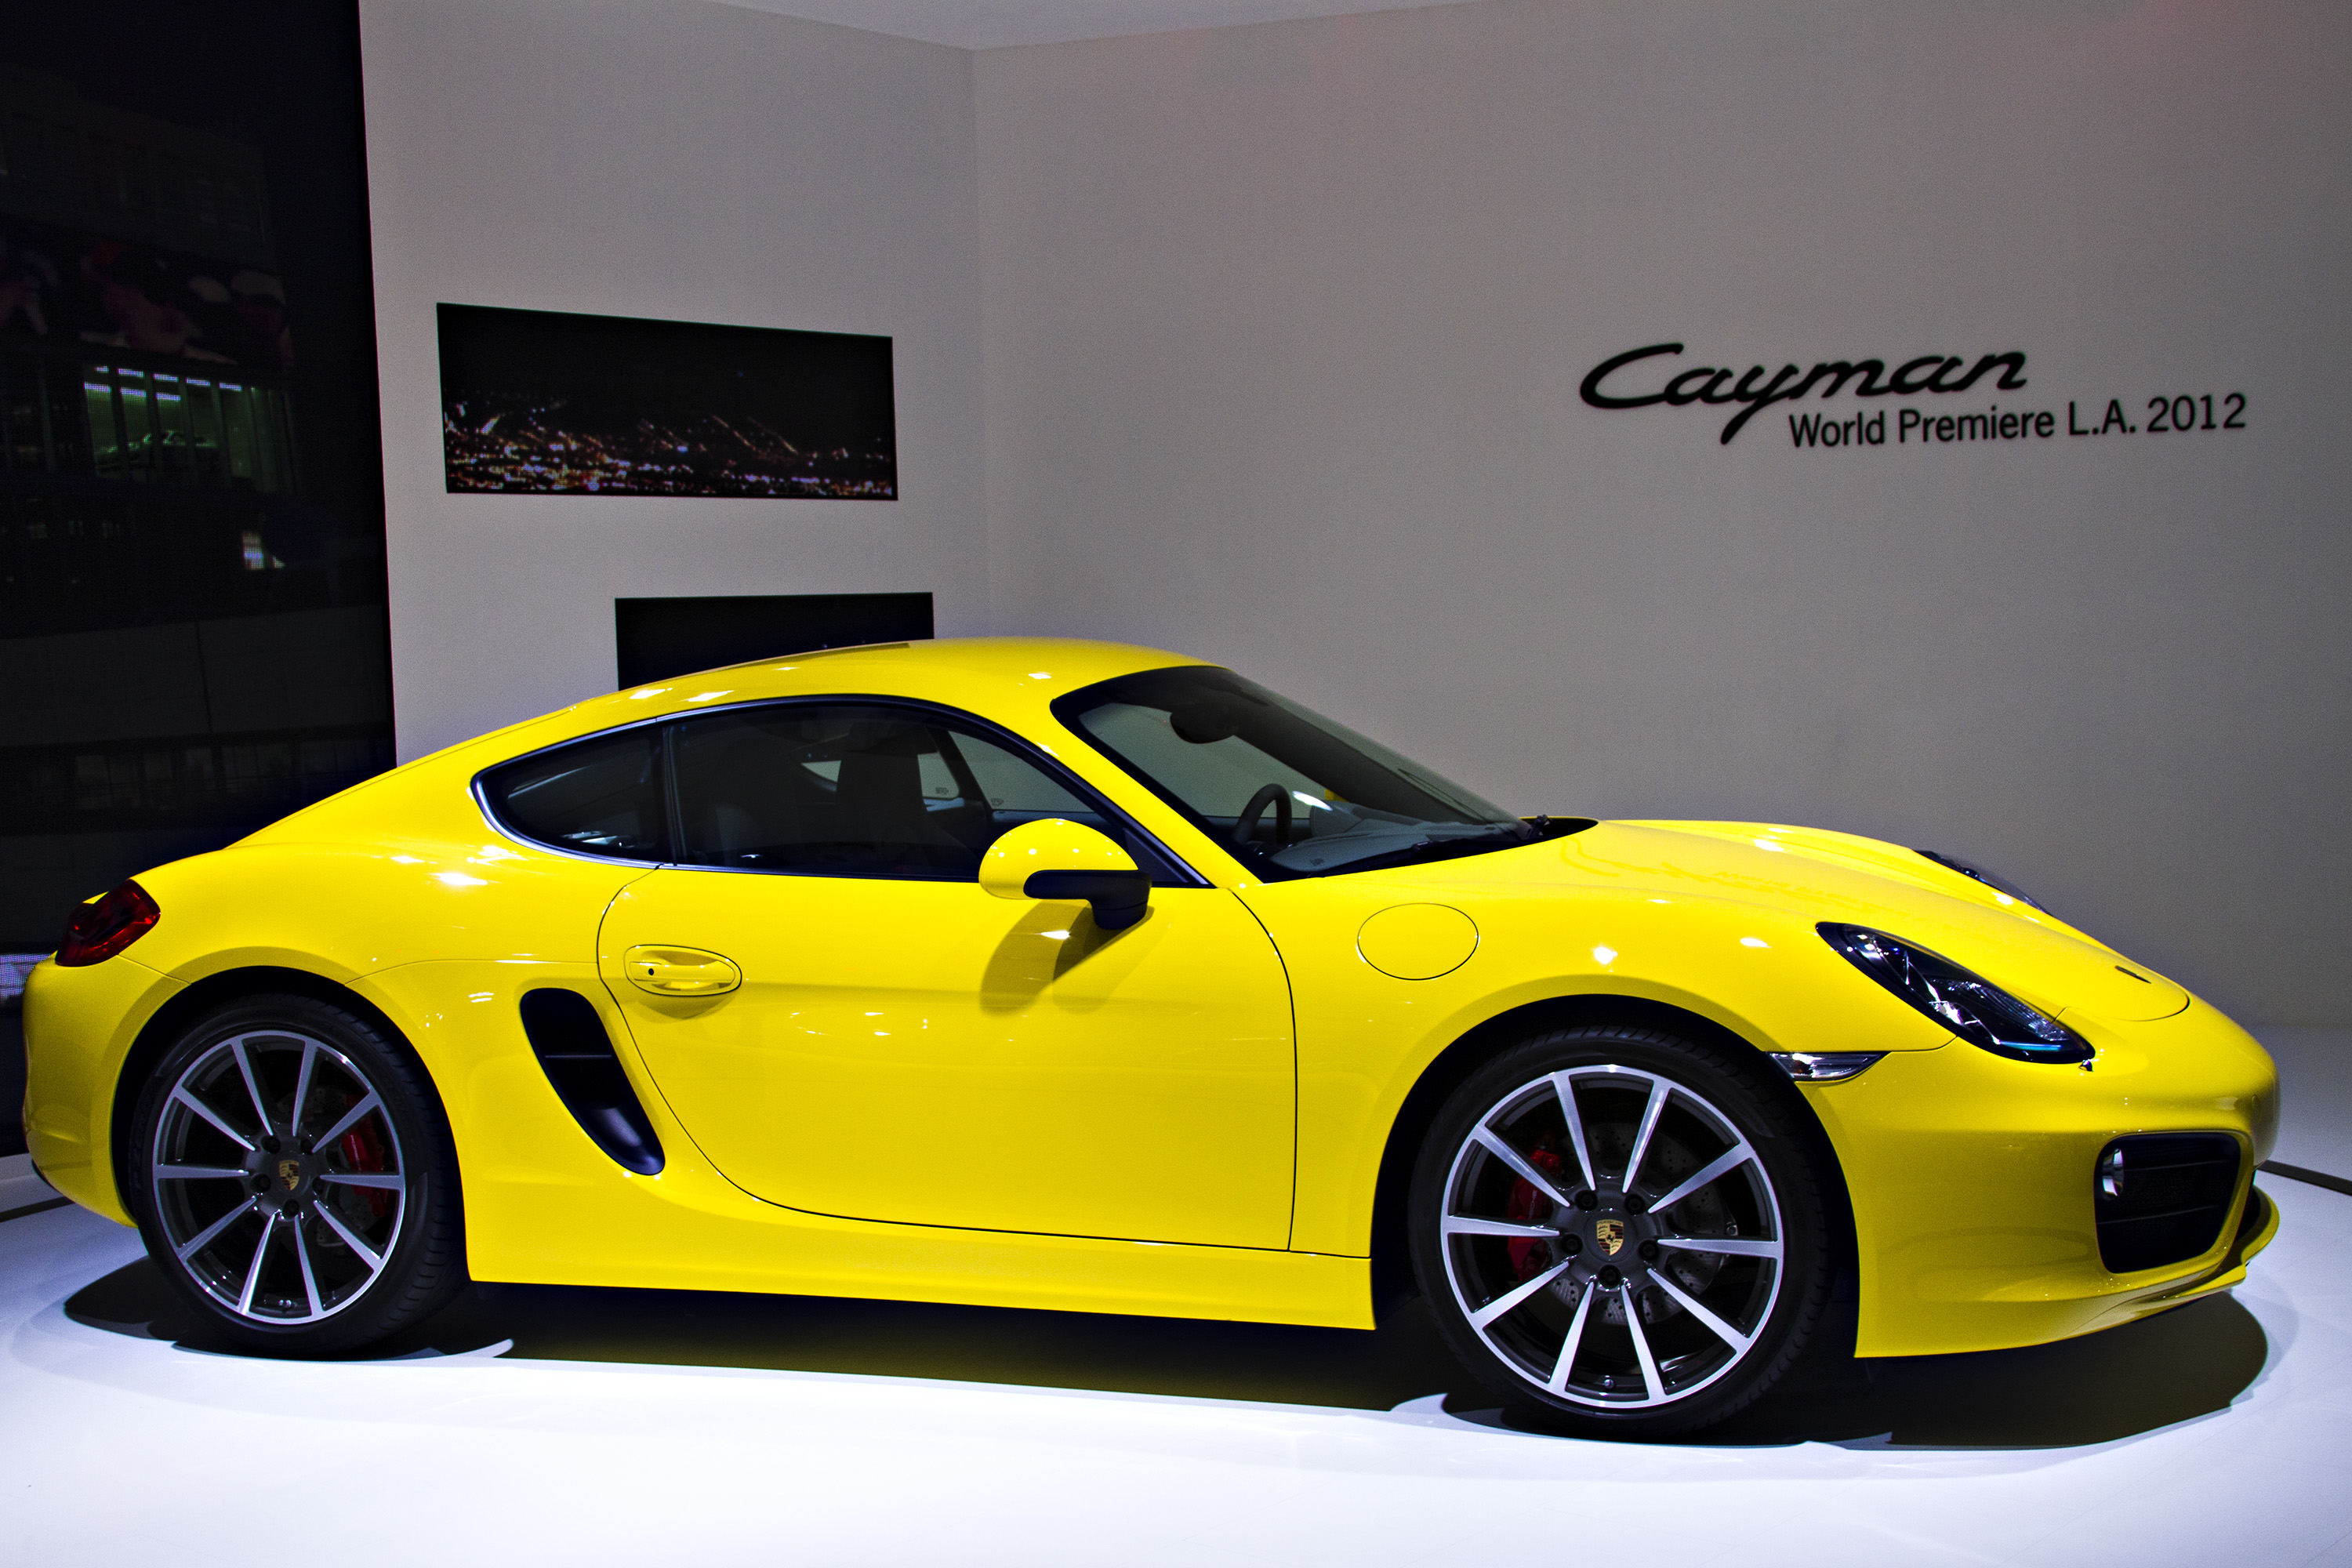 2013-porsche-cayman-world-premiere-2012-los-angeles-auto-show-by-melissa-hincha-ownby